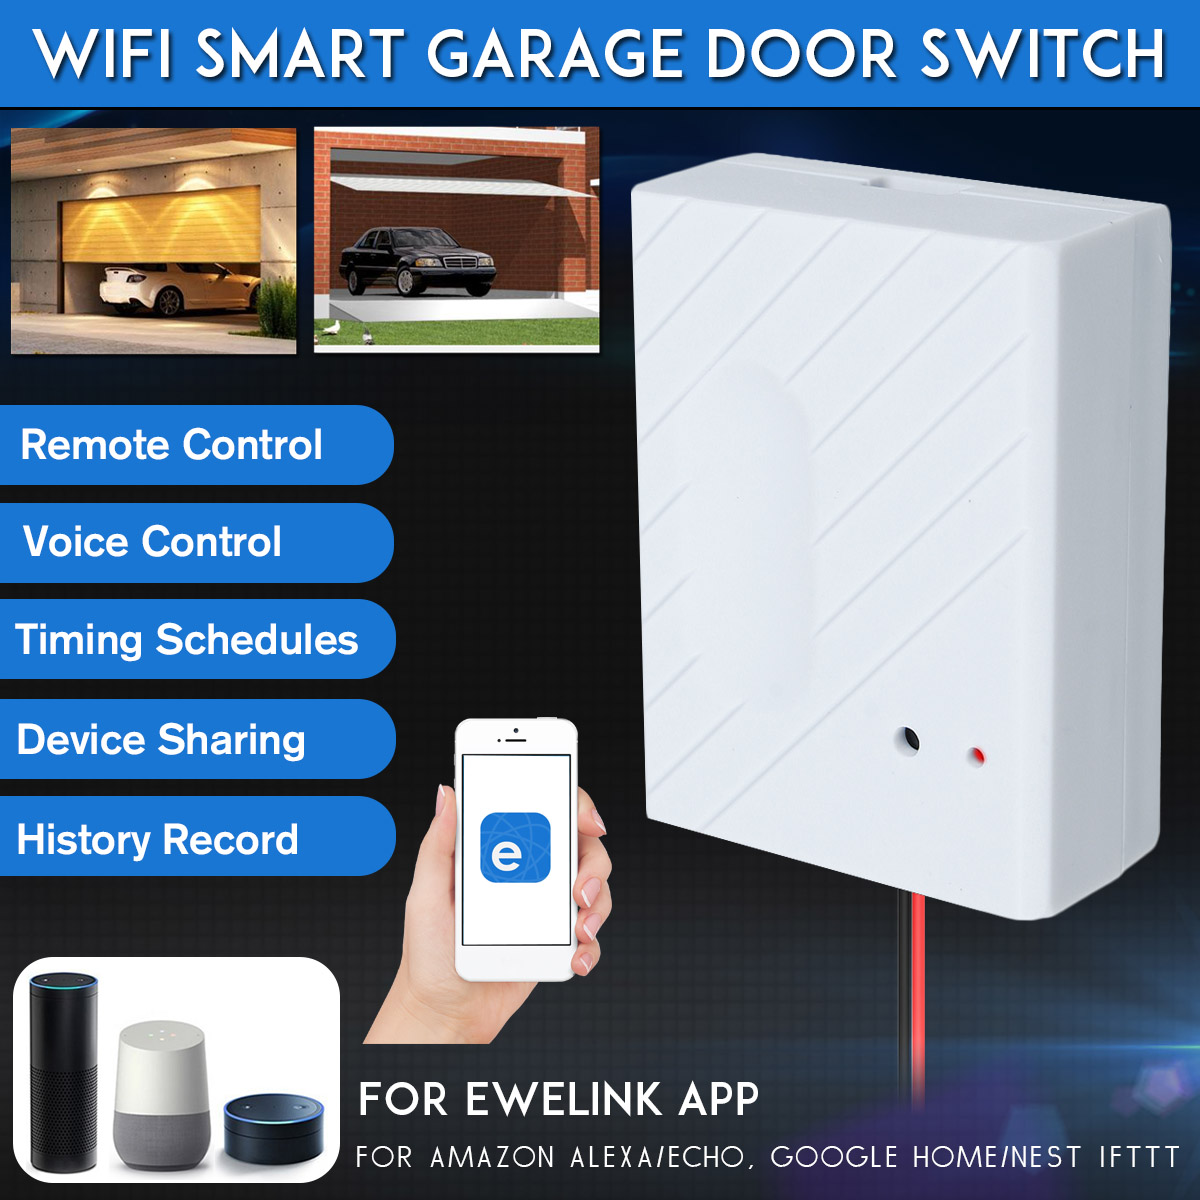 1Set WiFi Switch Smart Home Garage Door Opener Controller For eWeLink APP Phone Voice Control for 1Set WiFi Switch Smart Home Garage Door Opener Controller For eWeLink APP Phone Voice Control for Amazon Alexa for Google Home